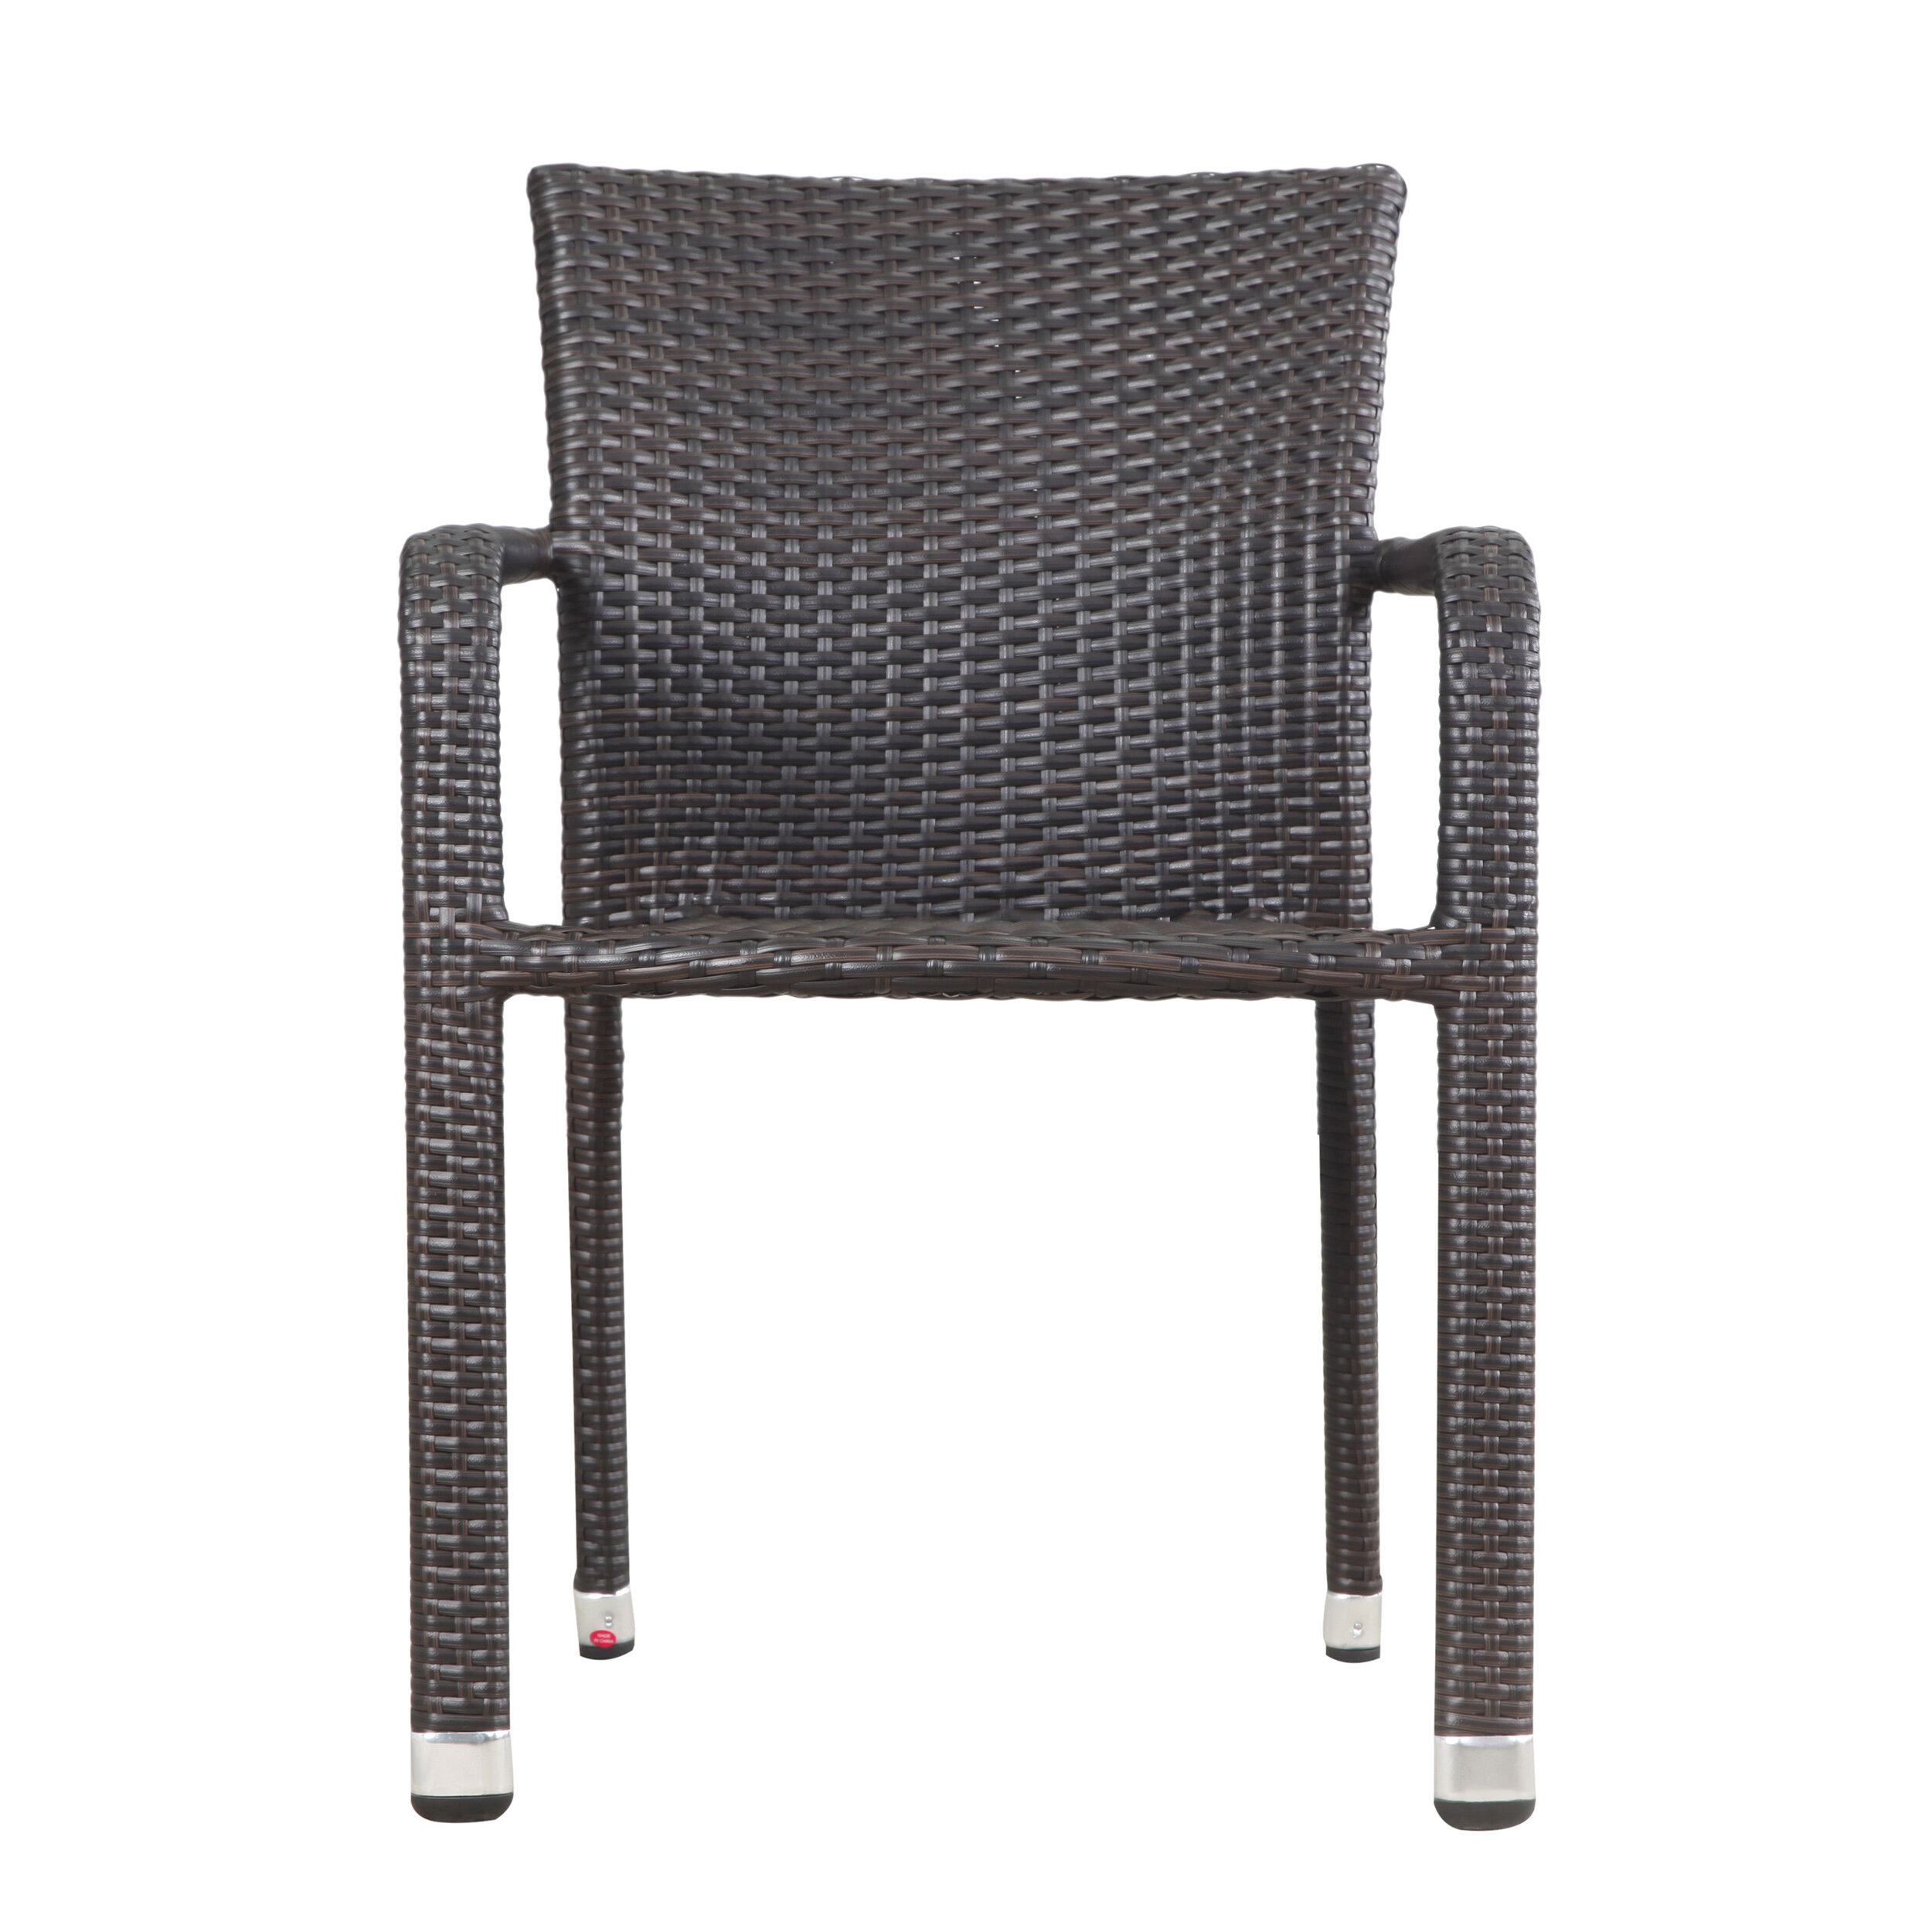 Astonishing Sol 72 Outdoor Blakely Stacking Patio Dining Chair Reviews Camellatalisay Diy Chair Ideas Camellatalisaycom